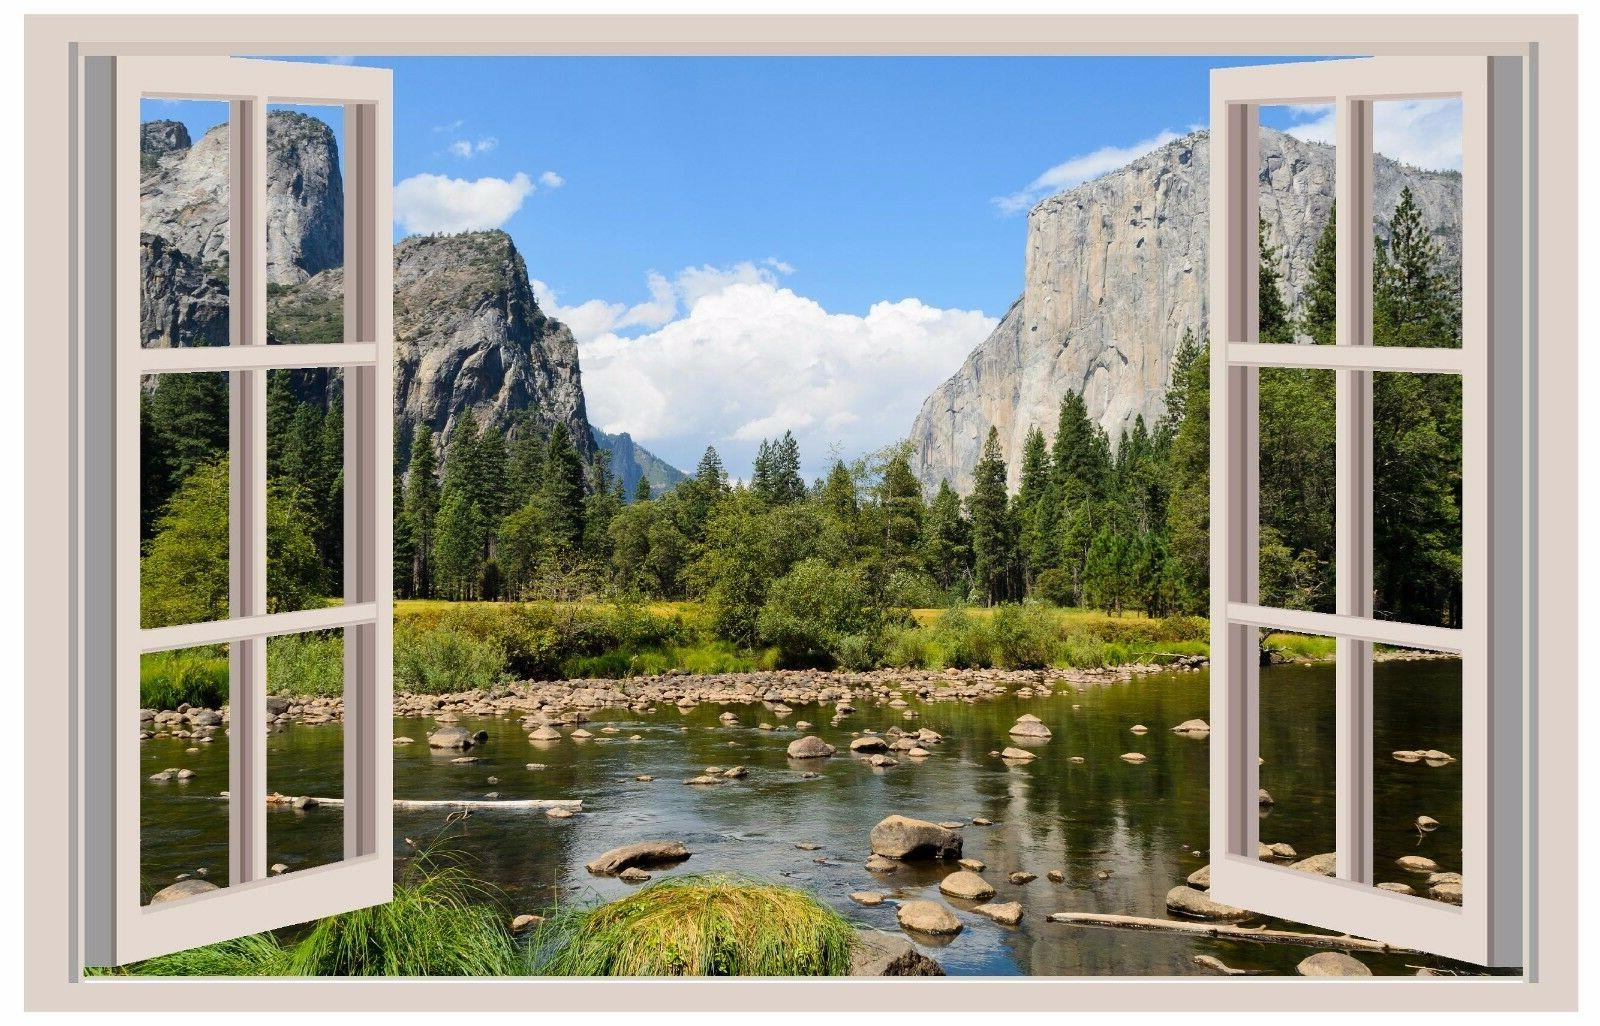 Valley View Yosemite 3D Window View Decal WALL STICKER Art M